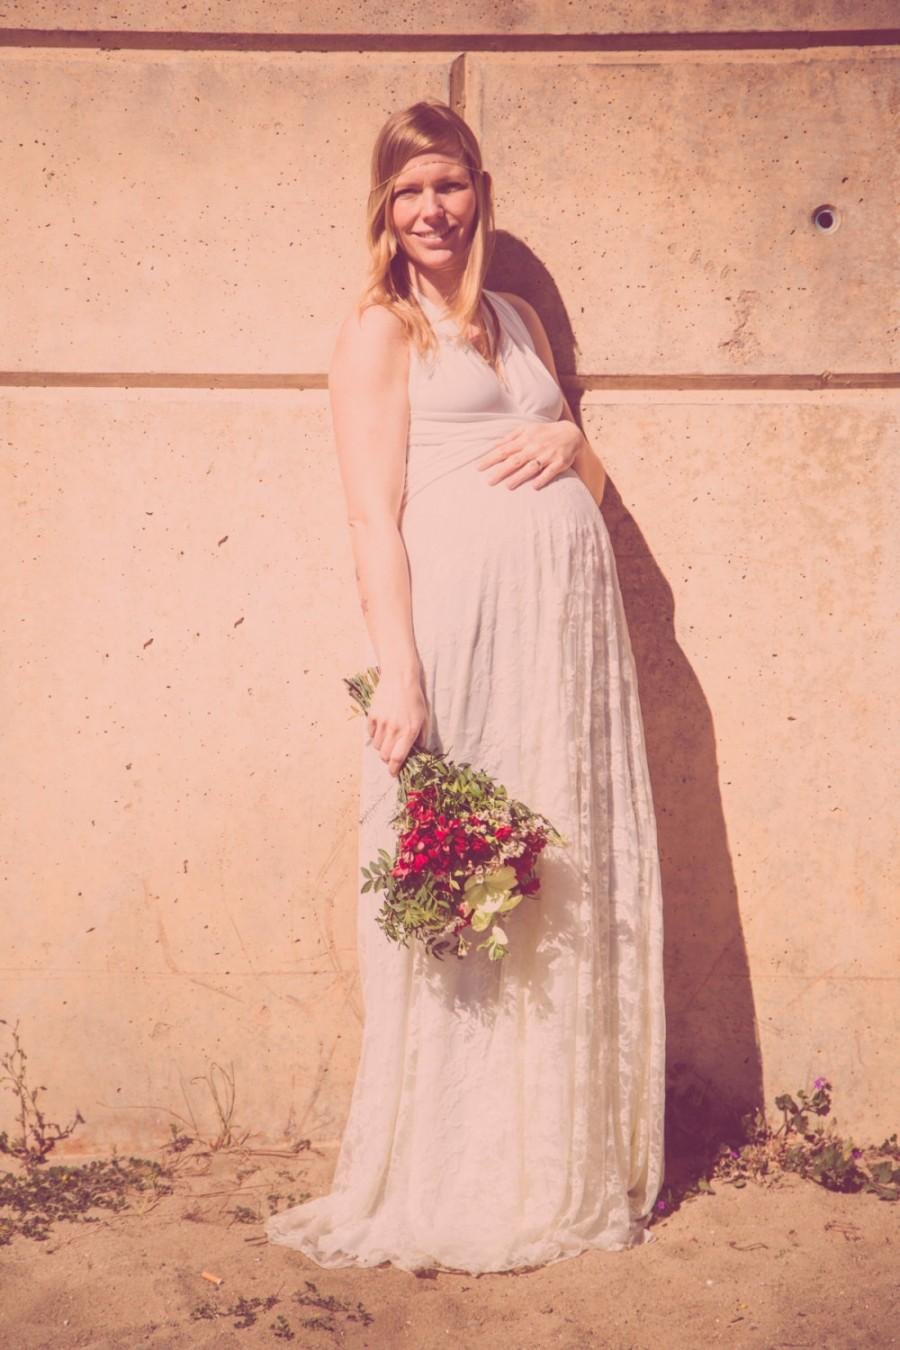 Wedding Ideas - Maternity - Weddbook